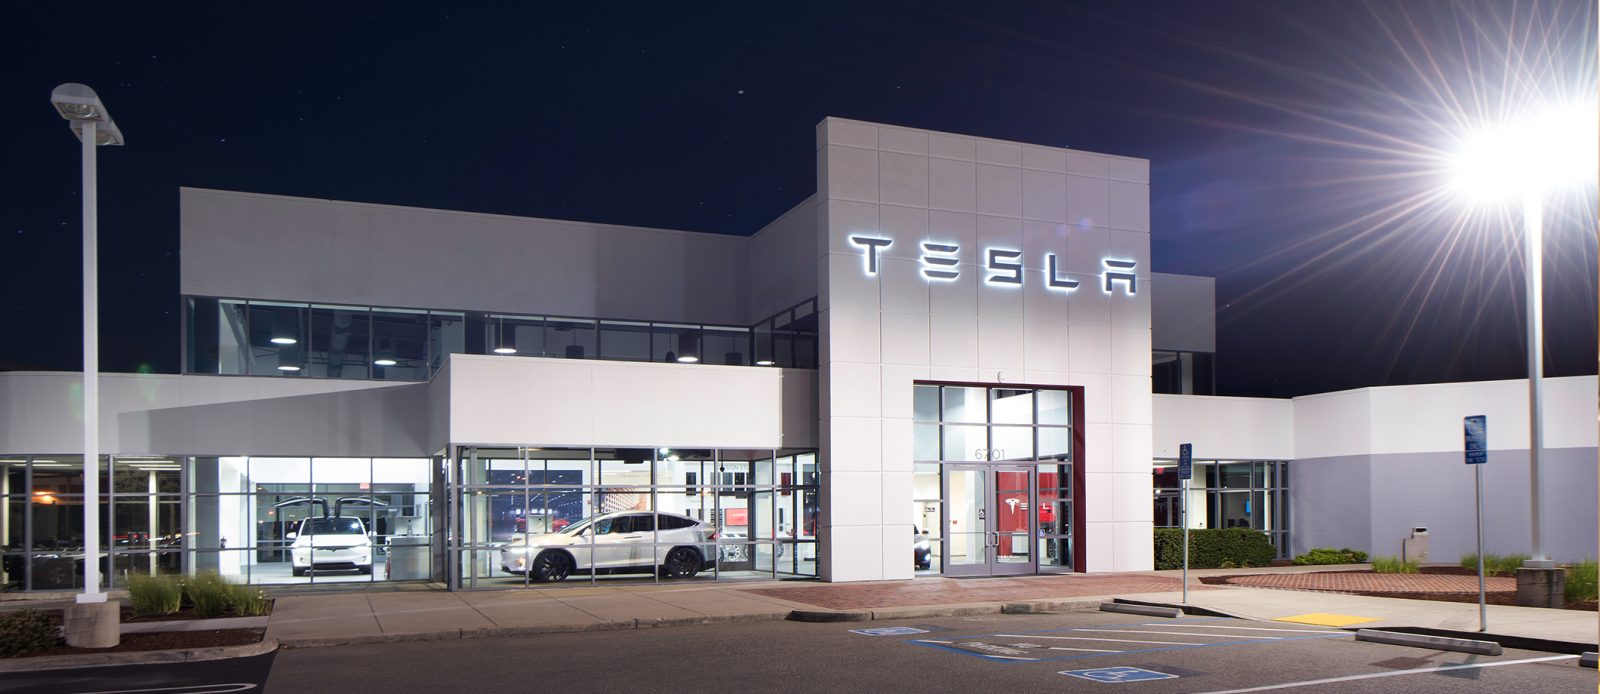 Hyundai Dealers Mn >> Tesla pushes a new bill in New Mexico to allow direct sales - Electrek